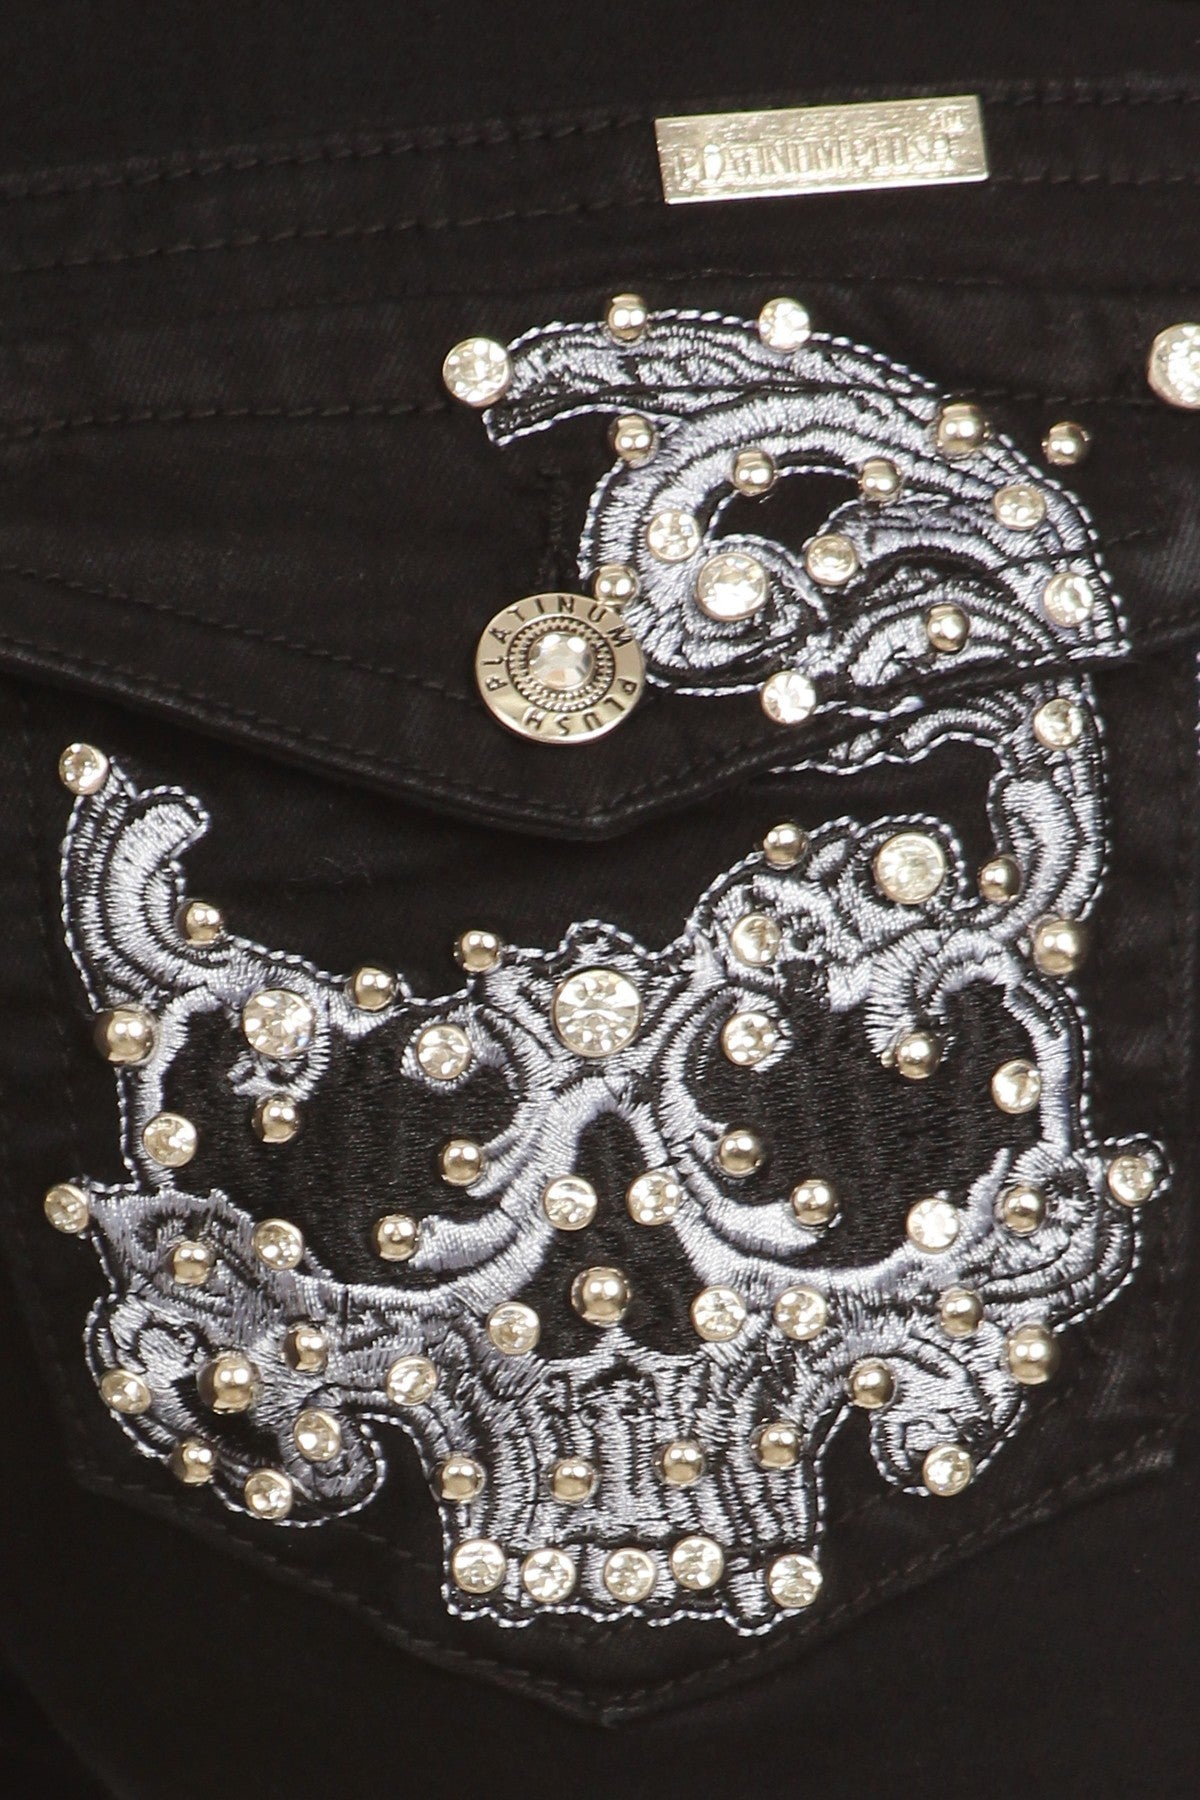 Badass skull embroidery jeans just got hotter in black denim! Biker Jeans WOMEN bling jeans